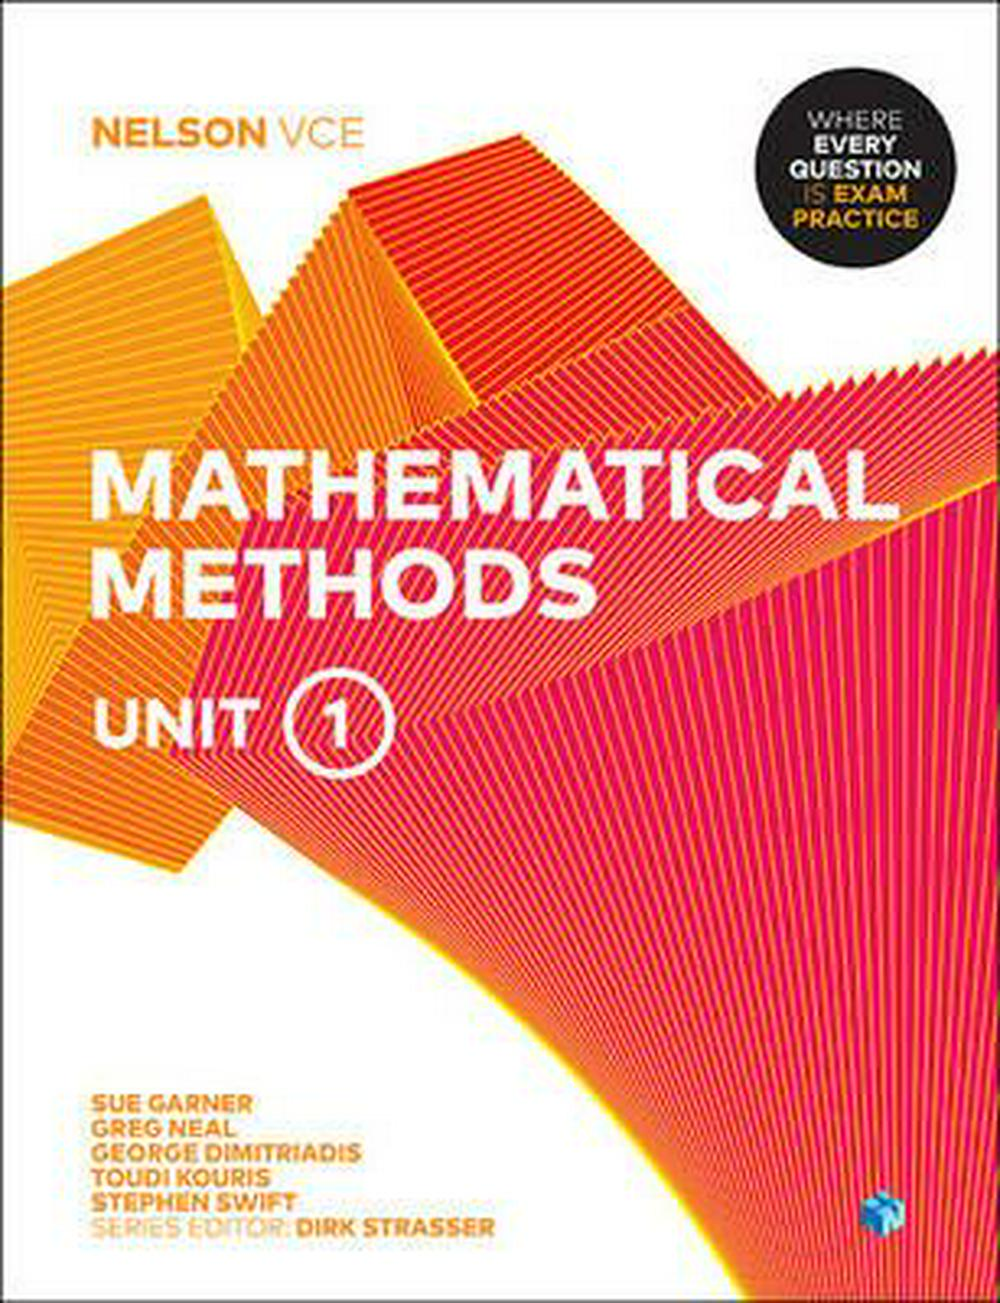 Nelson VCE Mathematical Methods Unit 1 (Student Book with 4 Access Codes) by Sue Garner,Greg Neal, ISBN: 9780170370943